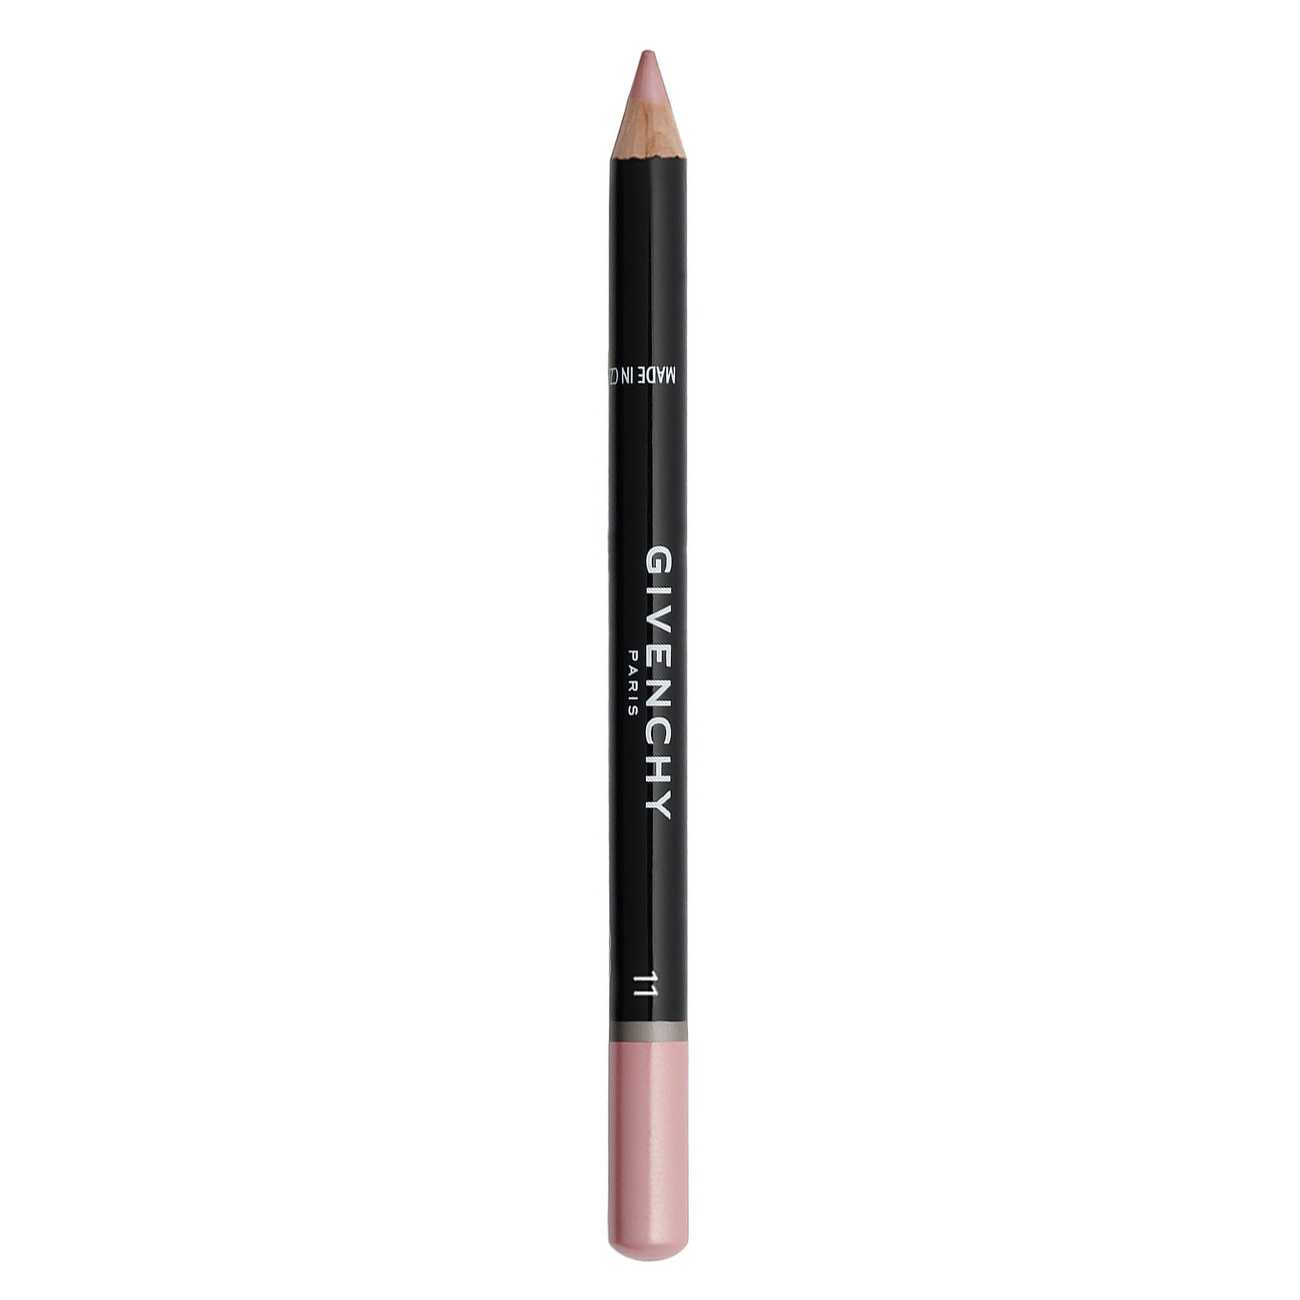 Lip Liner 2 G Pink 11 Givenchy imagine 2021 bestvalue.eu